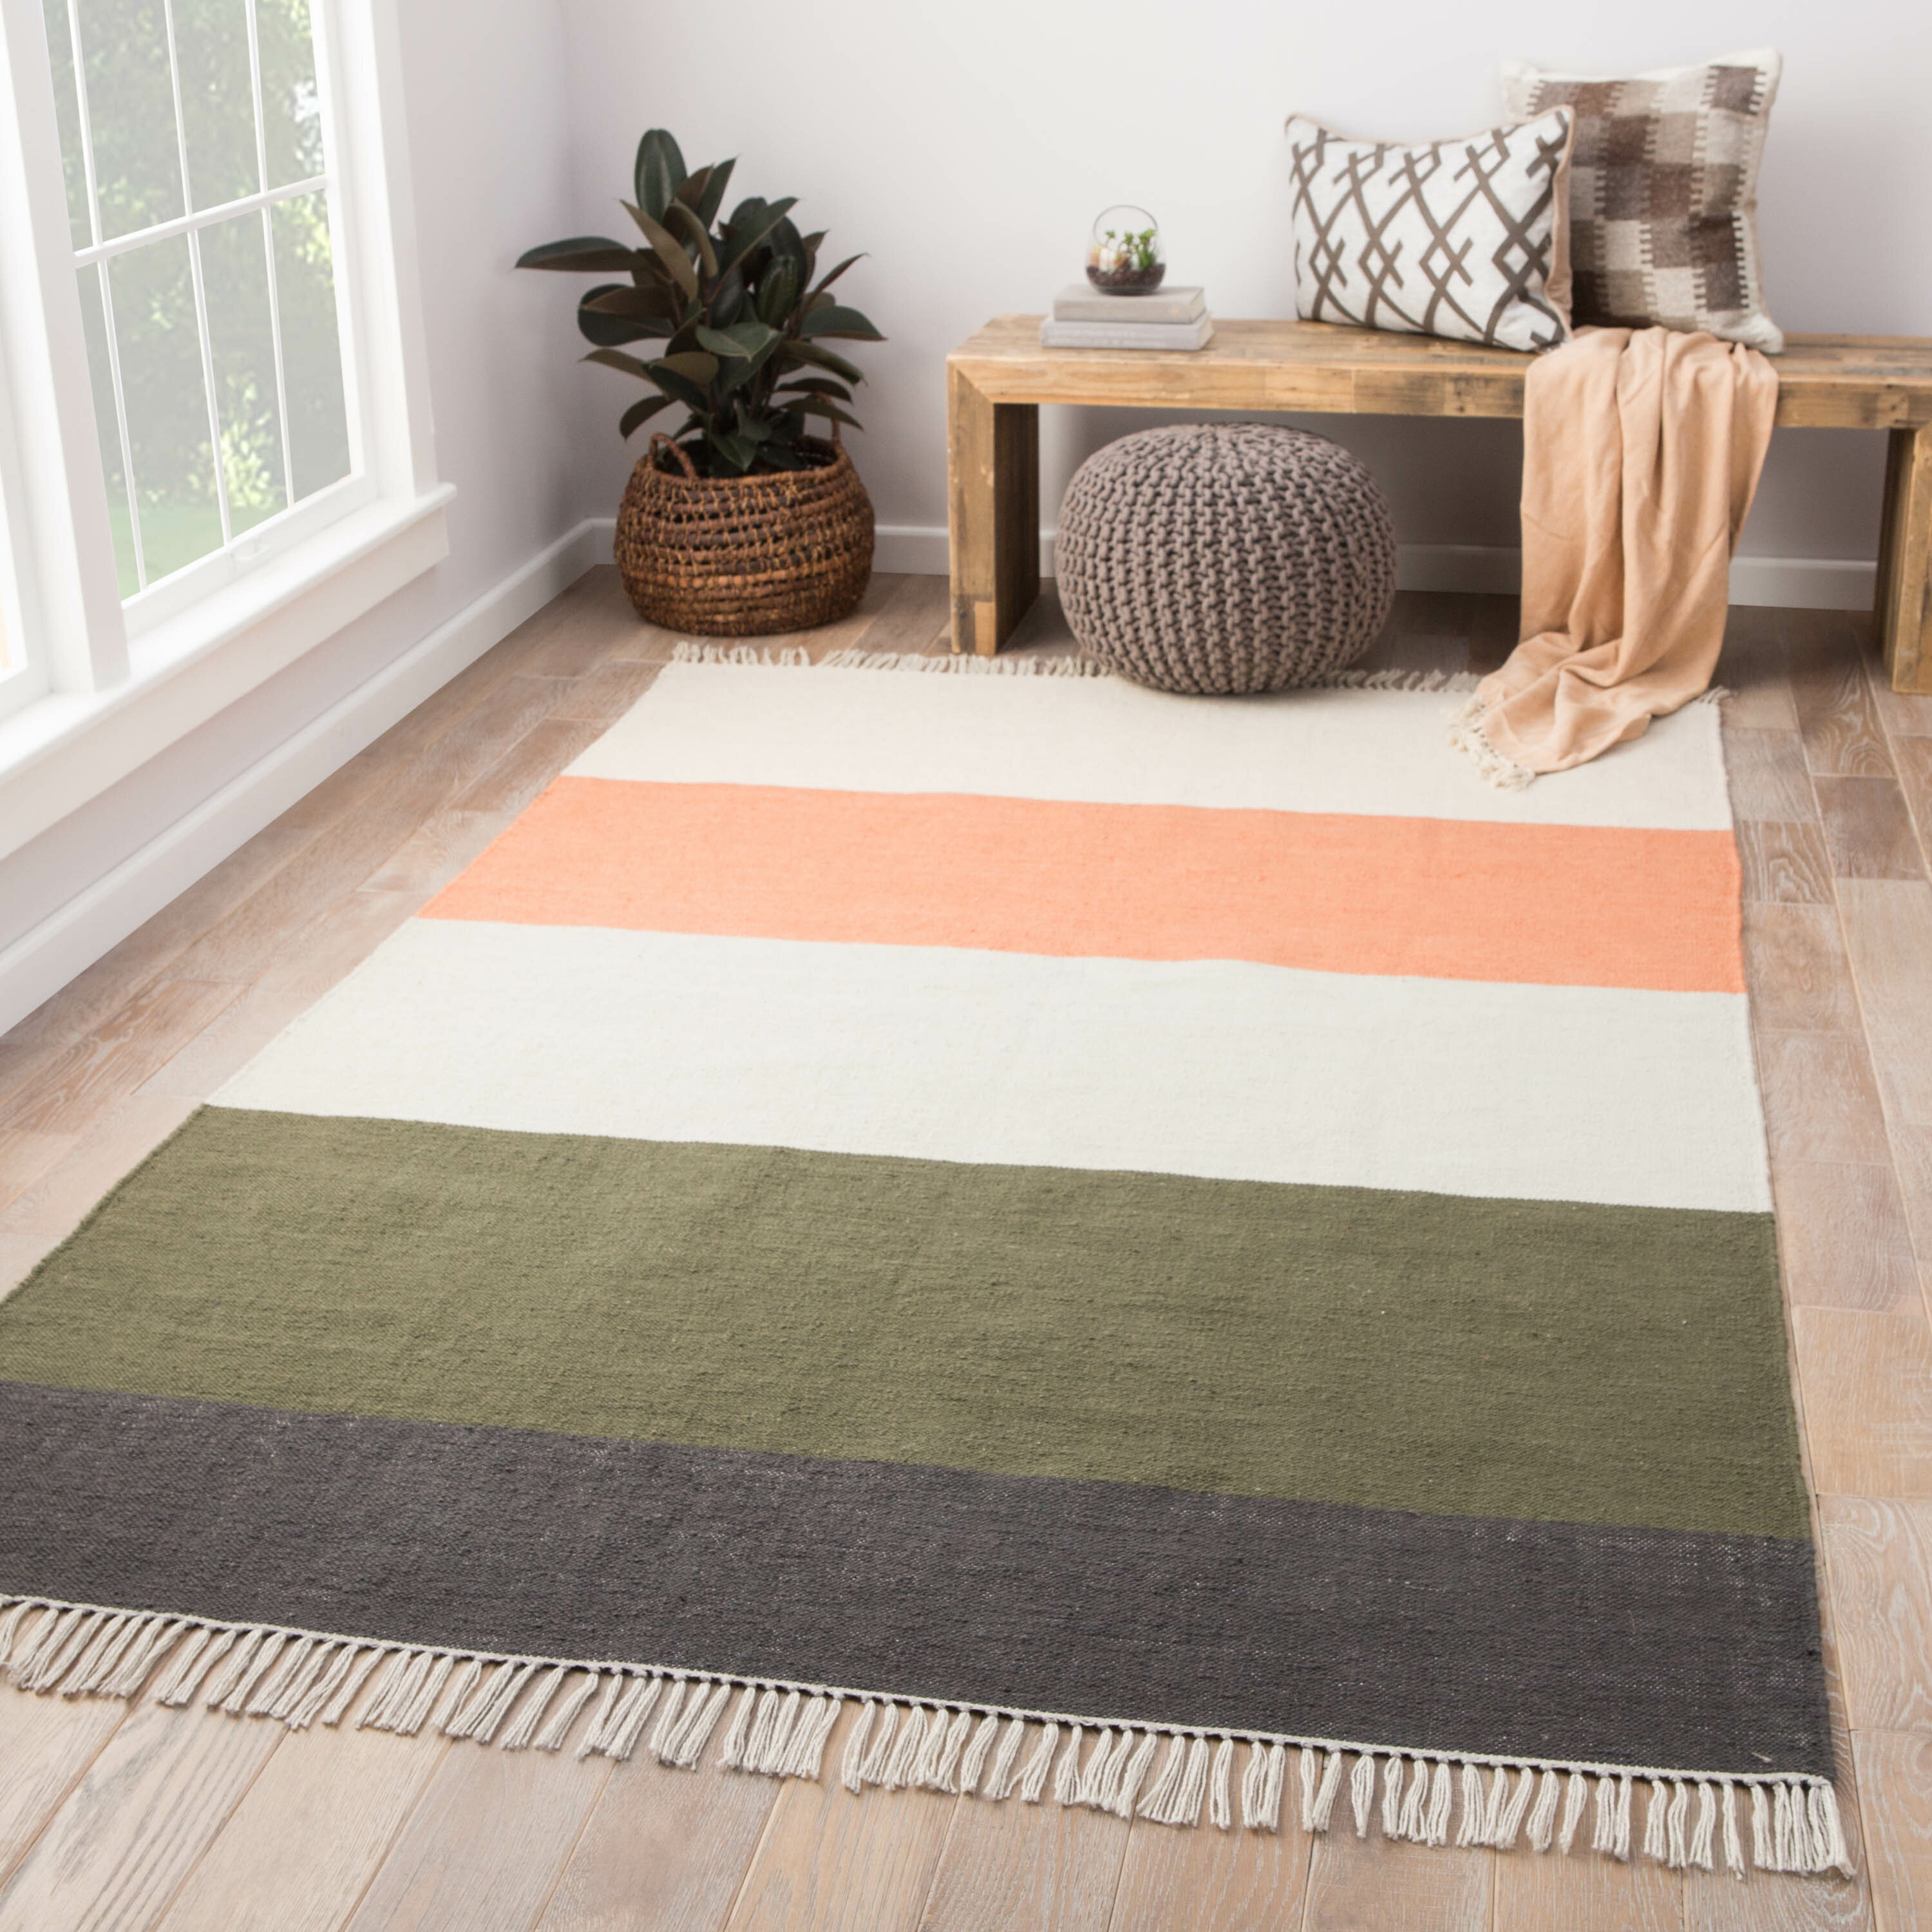 Striped Handwoven White Green Light Salmon Charcoal Gray Indoor Outdoor Area Rug Reviews Allmodern